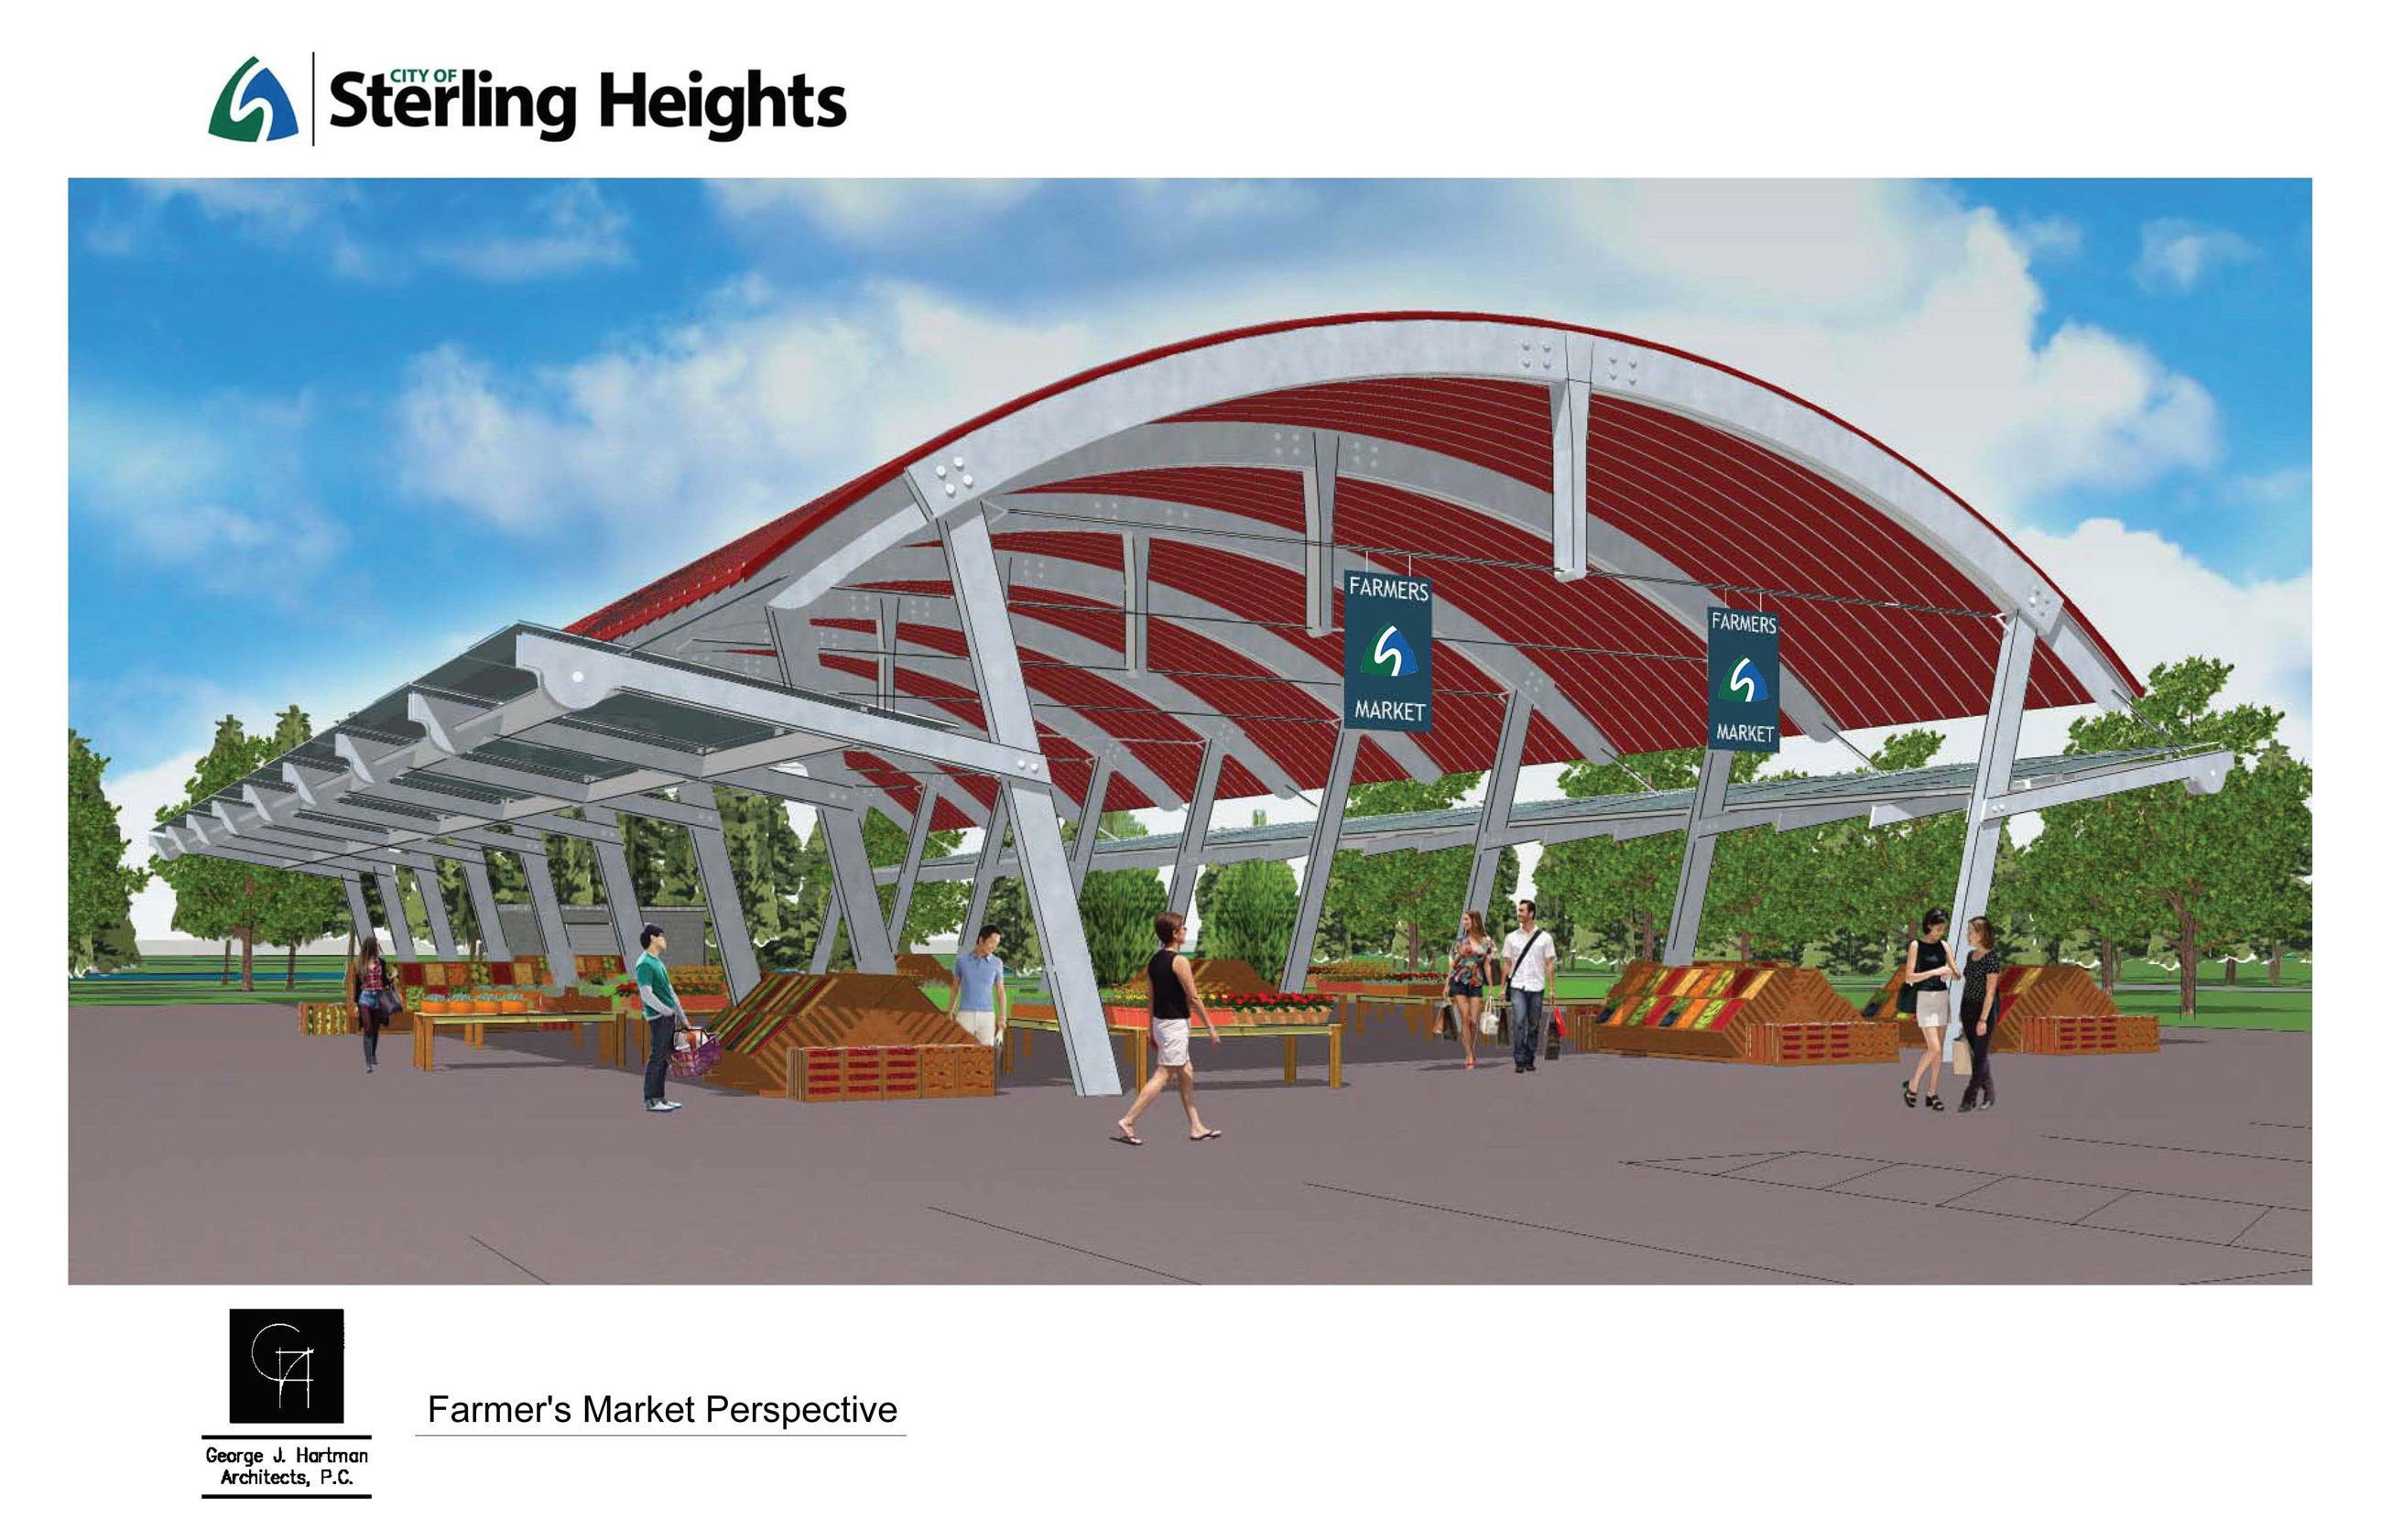 unveiled for in sterling news poster fireworks park thursday overhauled night time heights com wxyz dodge